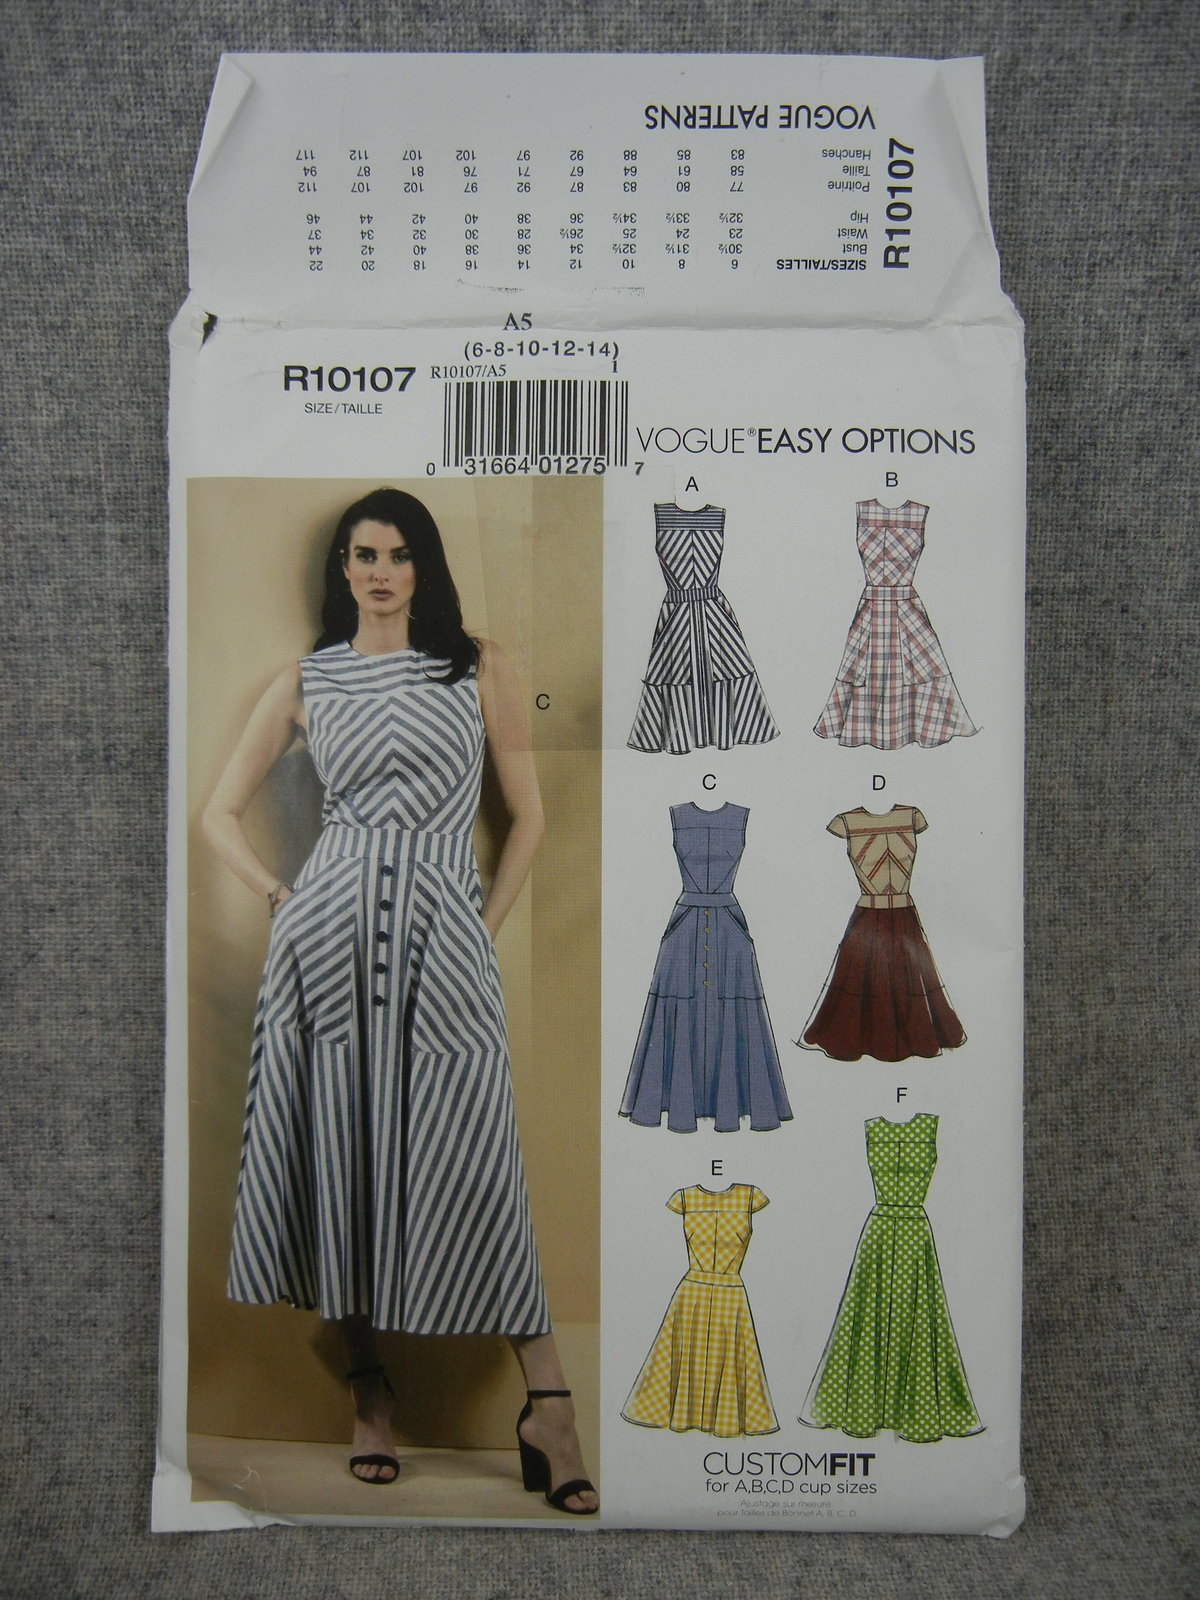 Primary image for Misses 6-14 Summer Dress Vogue R10107 / Vogue V9357 Custom fit for A-D cup size